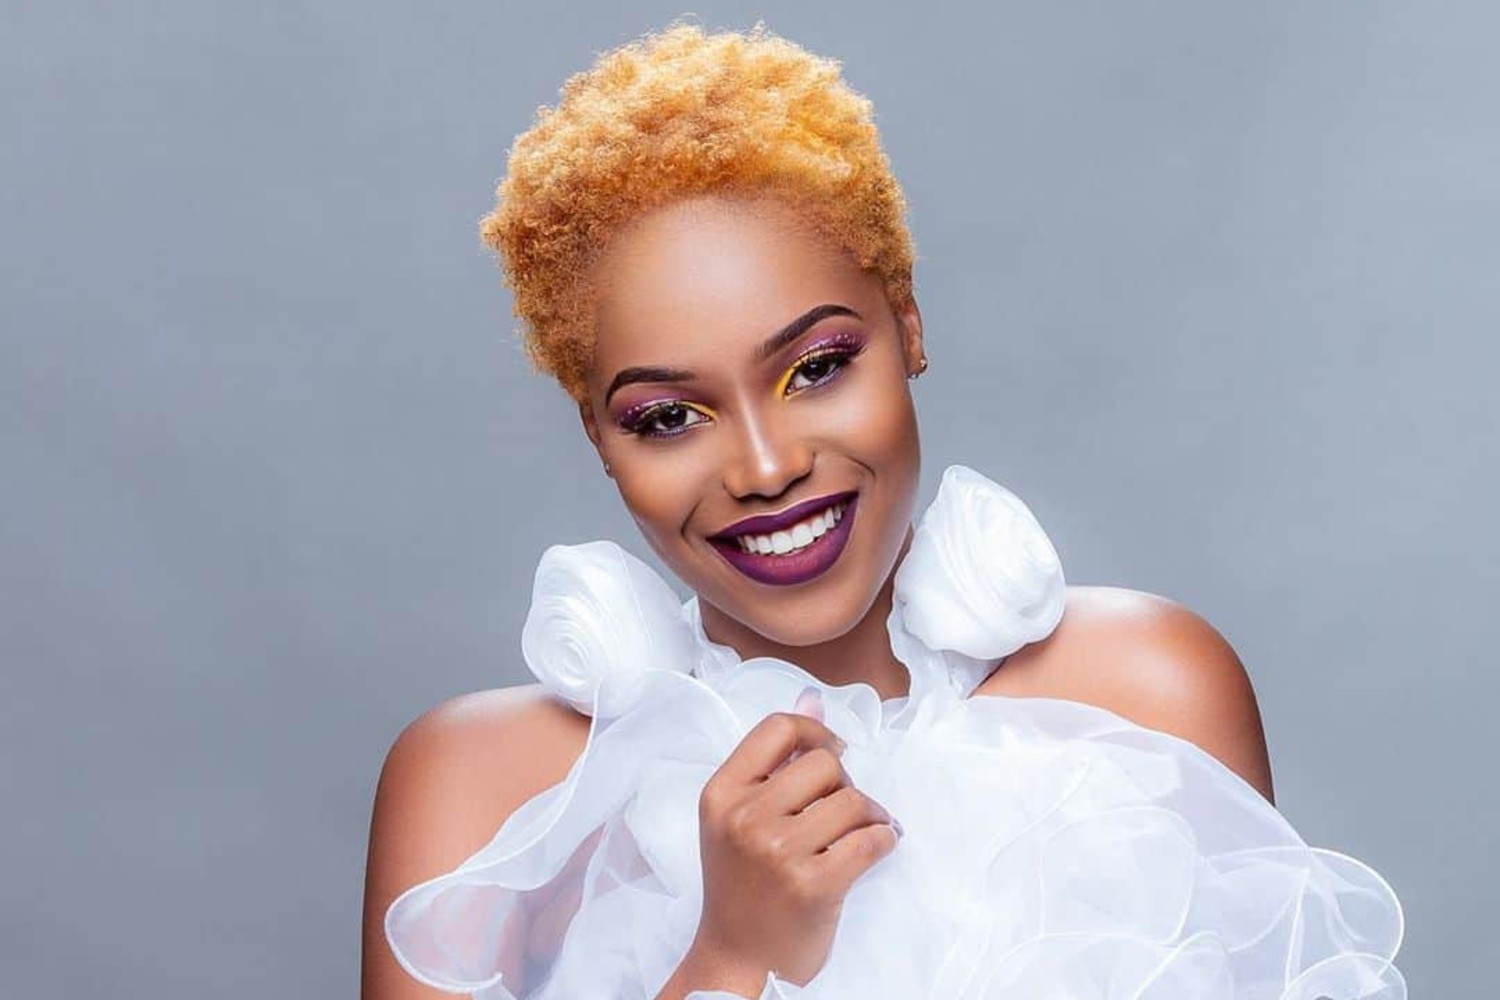 Nutty O and Tamy Moyo, Take Lead In Star FM Listeners' Choice Awards